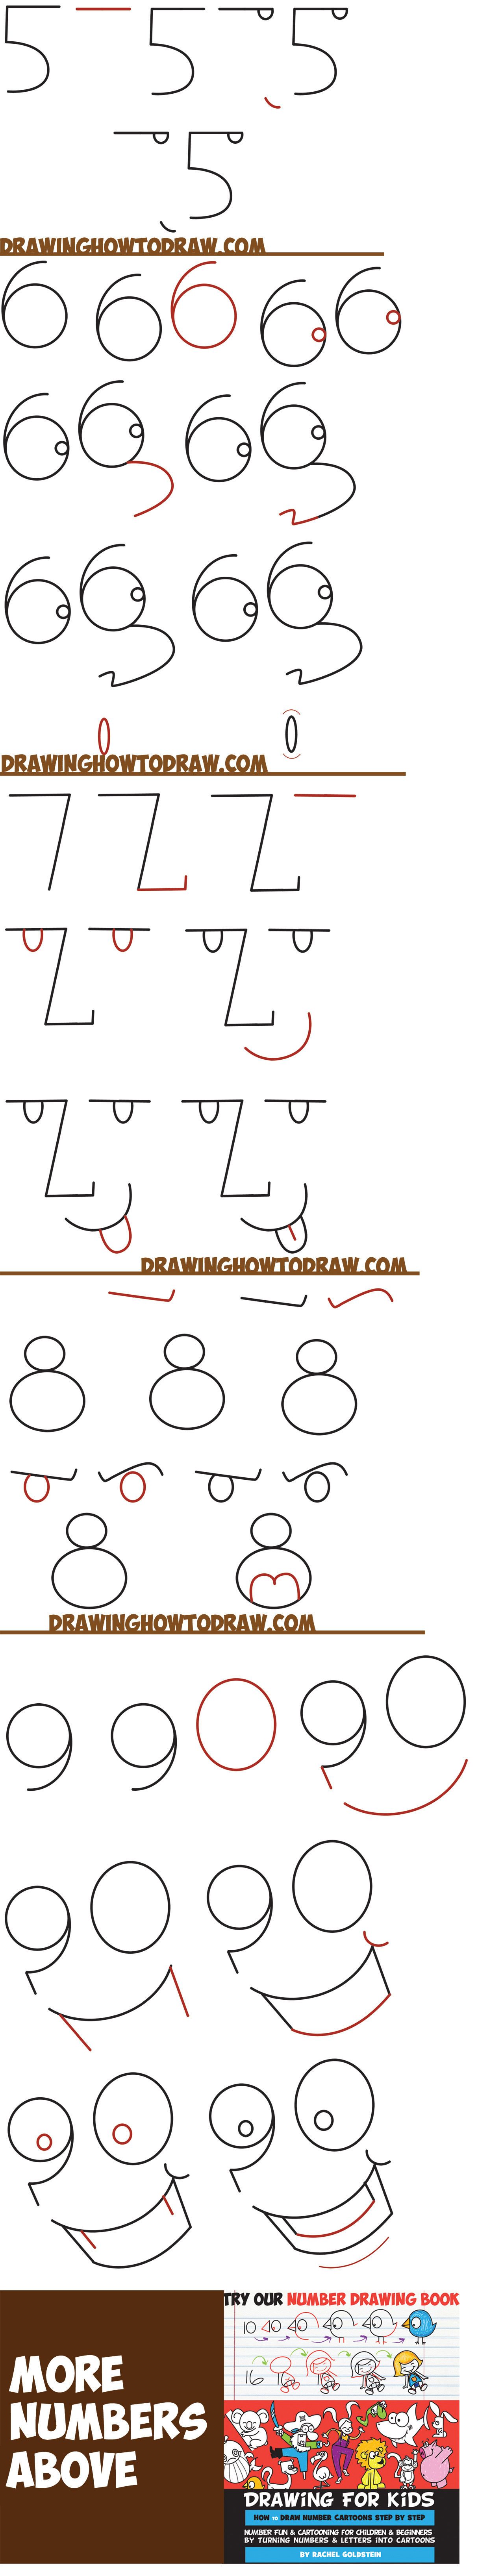 Learn How to Draw Cartoon Faces from Numbers 1 - 9 Shapes in Simple Steps Drawing Lesson for Kids and Beginners